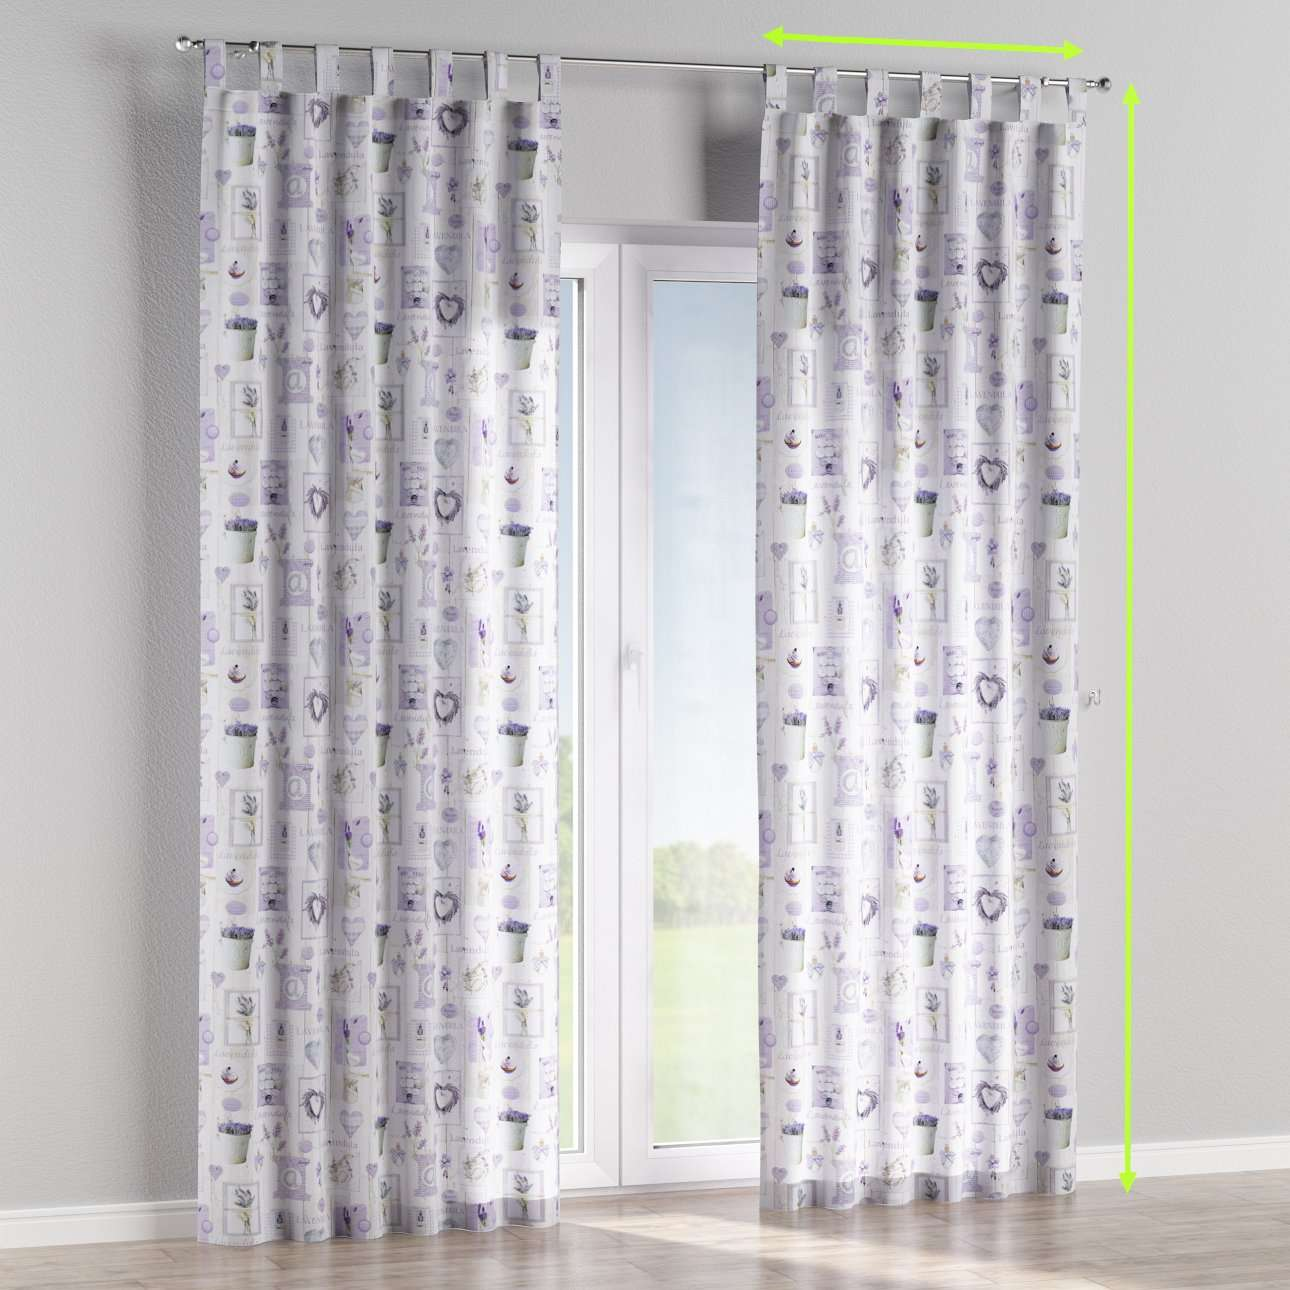 Tab top lined curtains in collection Ashley, fabric: 140-18